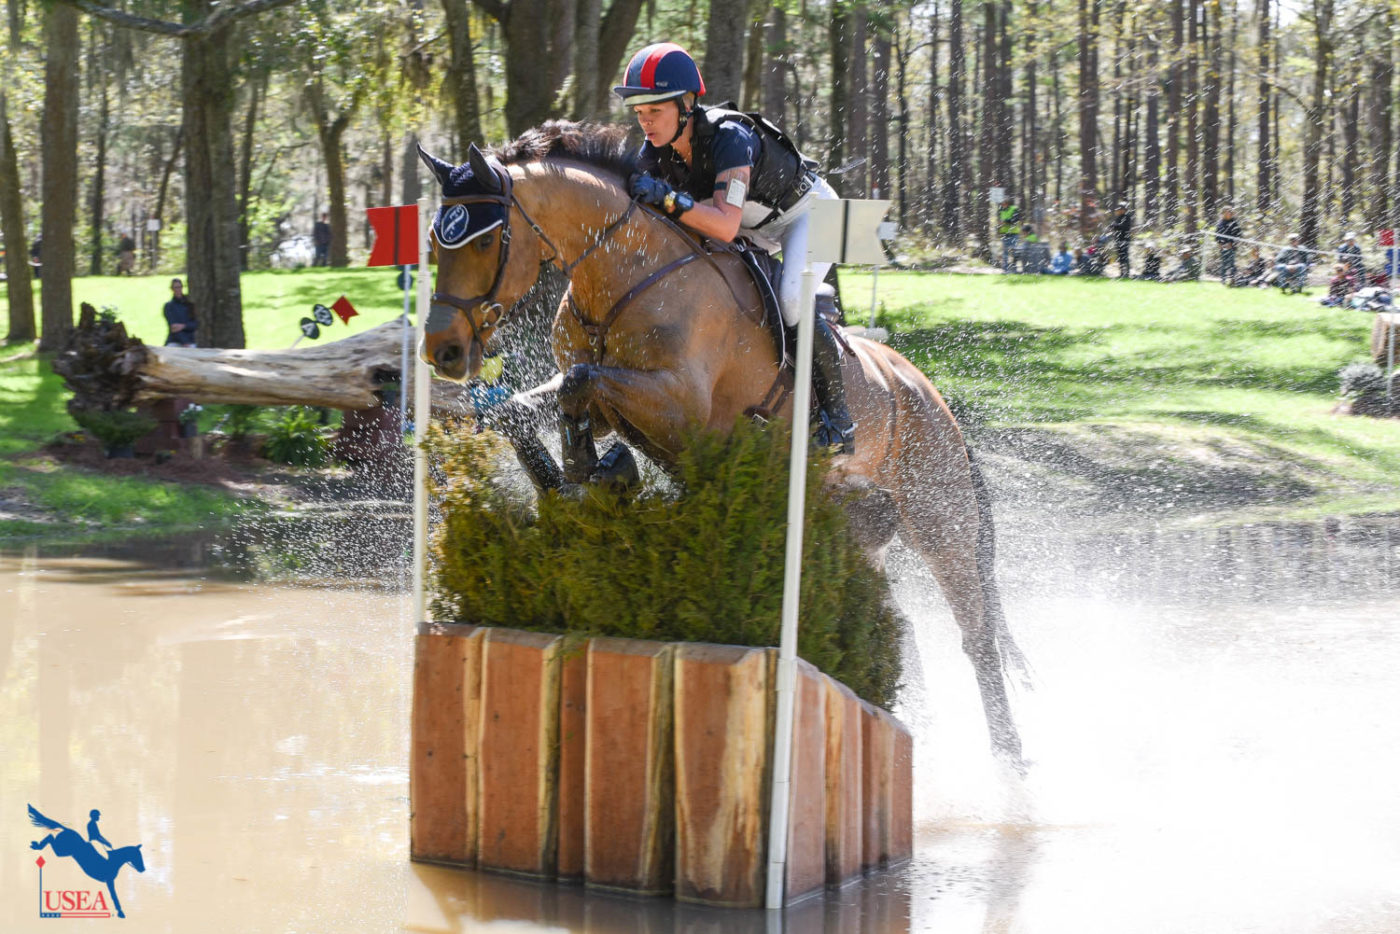 Alyssa Phillips and Oskar steal the lead in the Advanced division after cross-country! USEA/Kate Lokey photo.